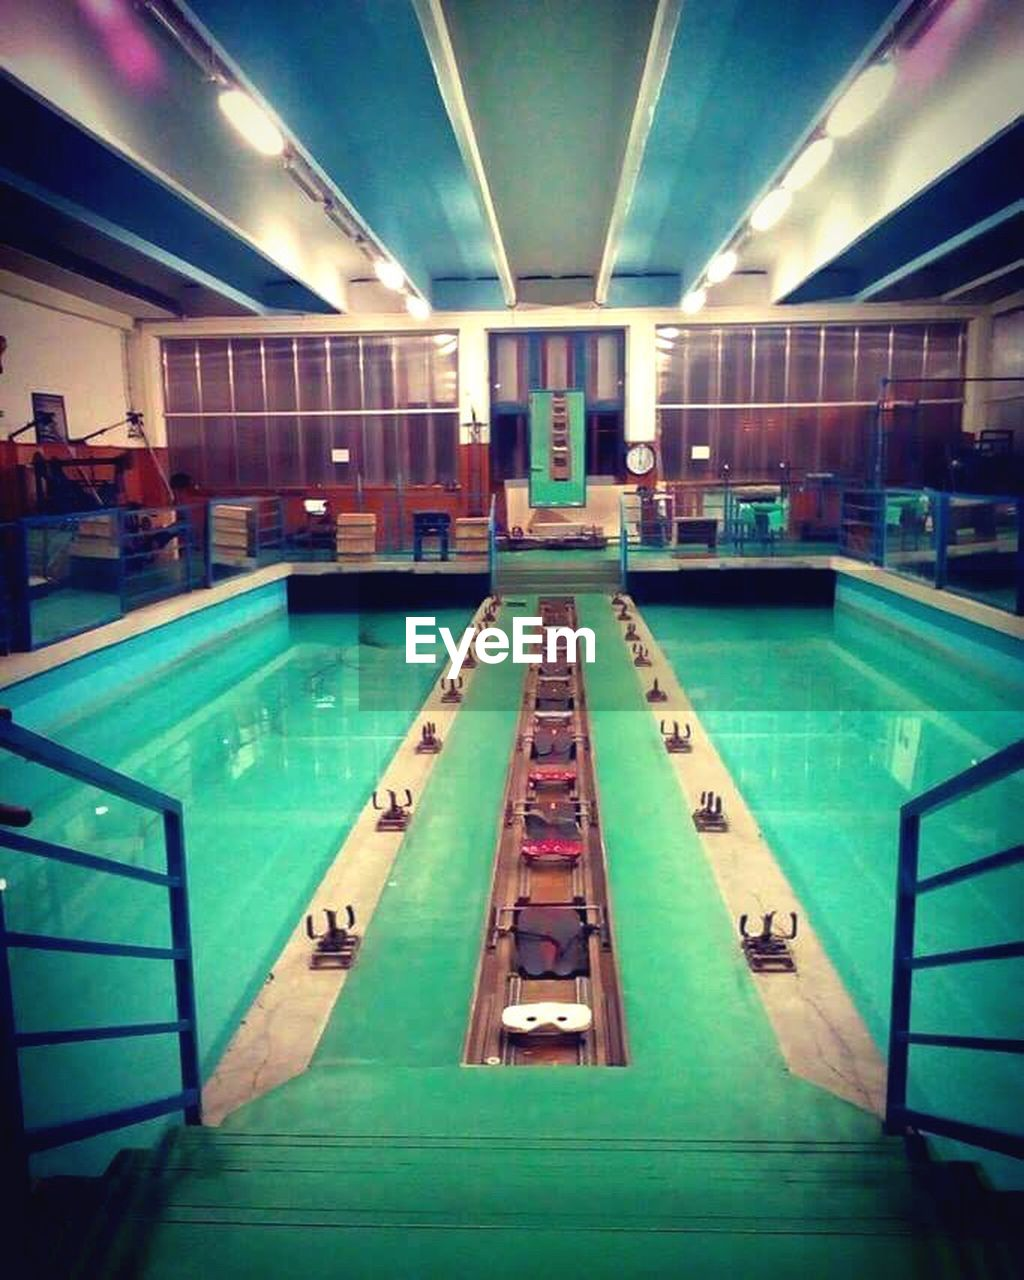 indoors, swimming pool, illuminated, pool table, water, architecture, modern, pool - cue sport, day, pool ball, no people, snooker and pool, pool cue